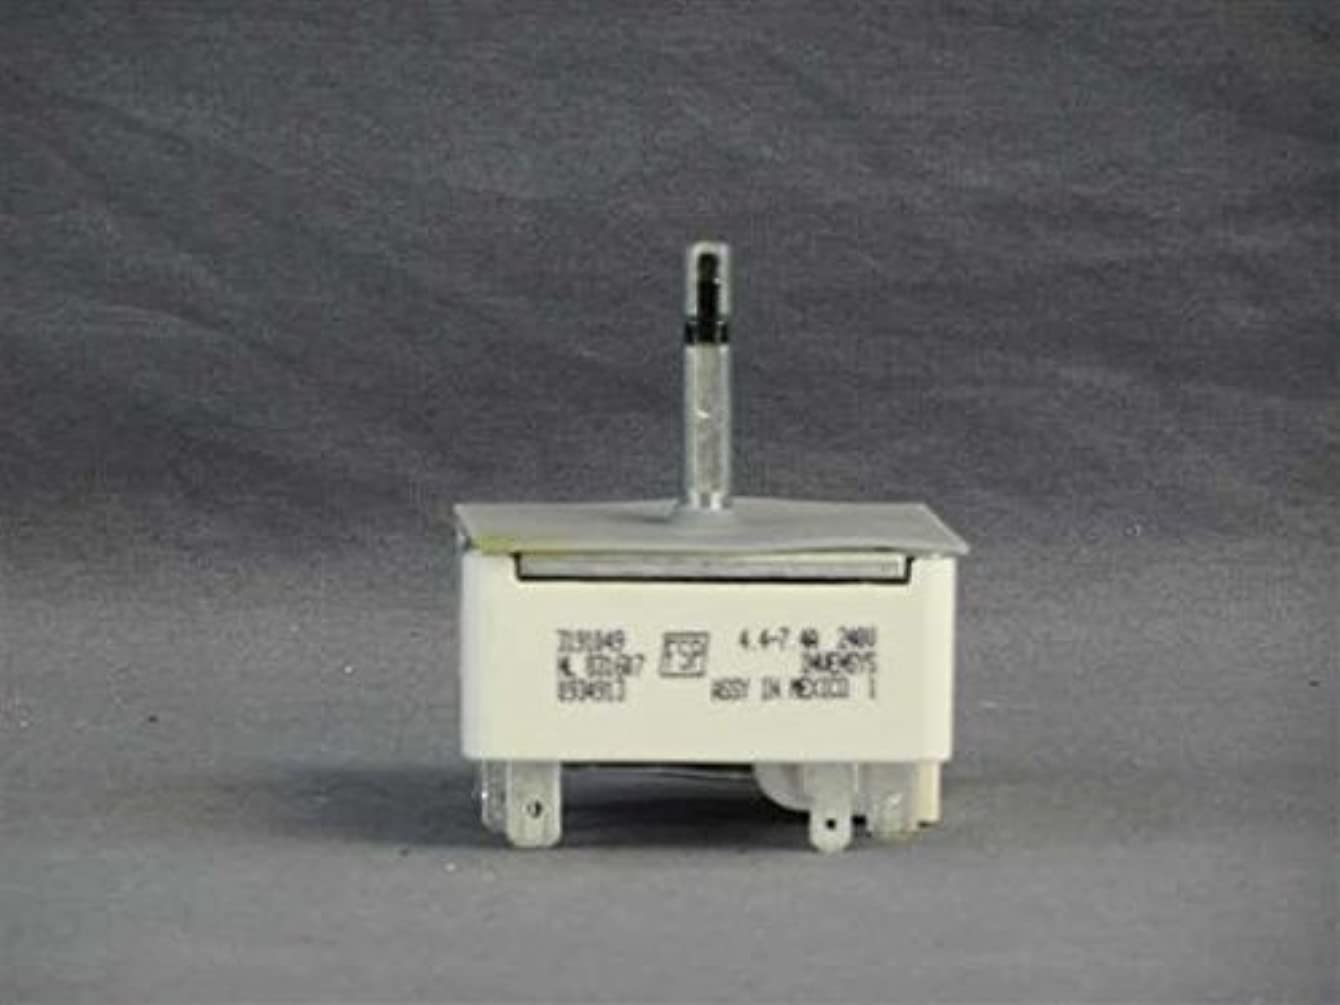 Recertified Whirlpool 3191049 Cook top Surface Element Switch 4.4-7.4A 240V